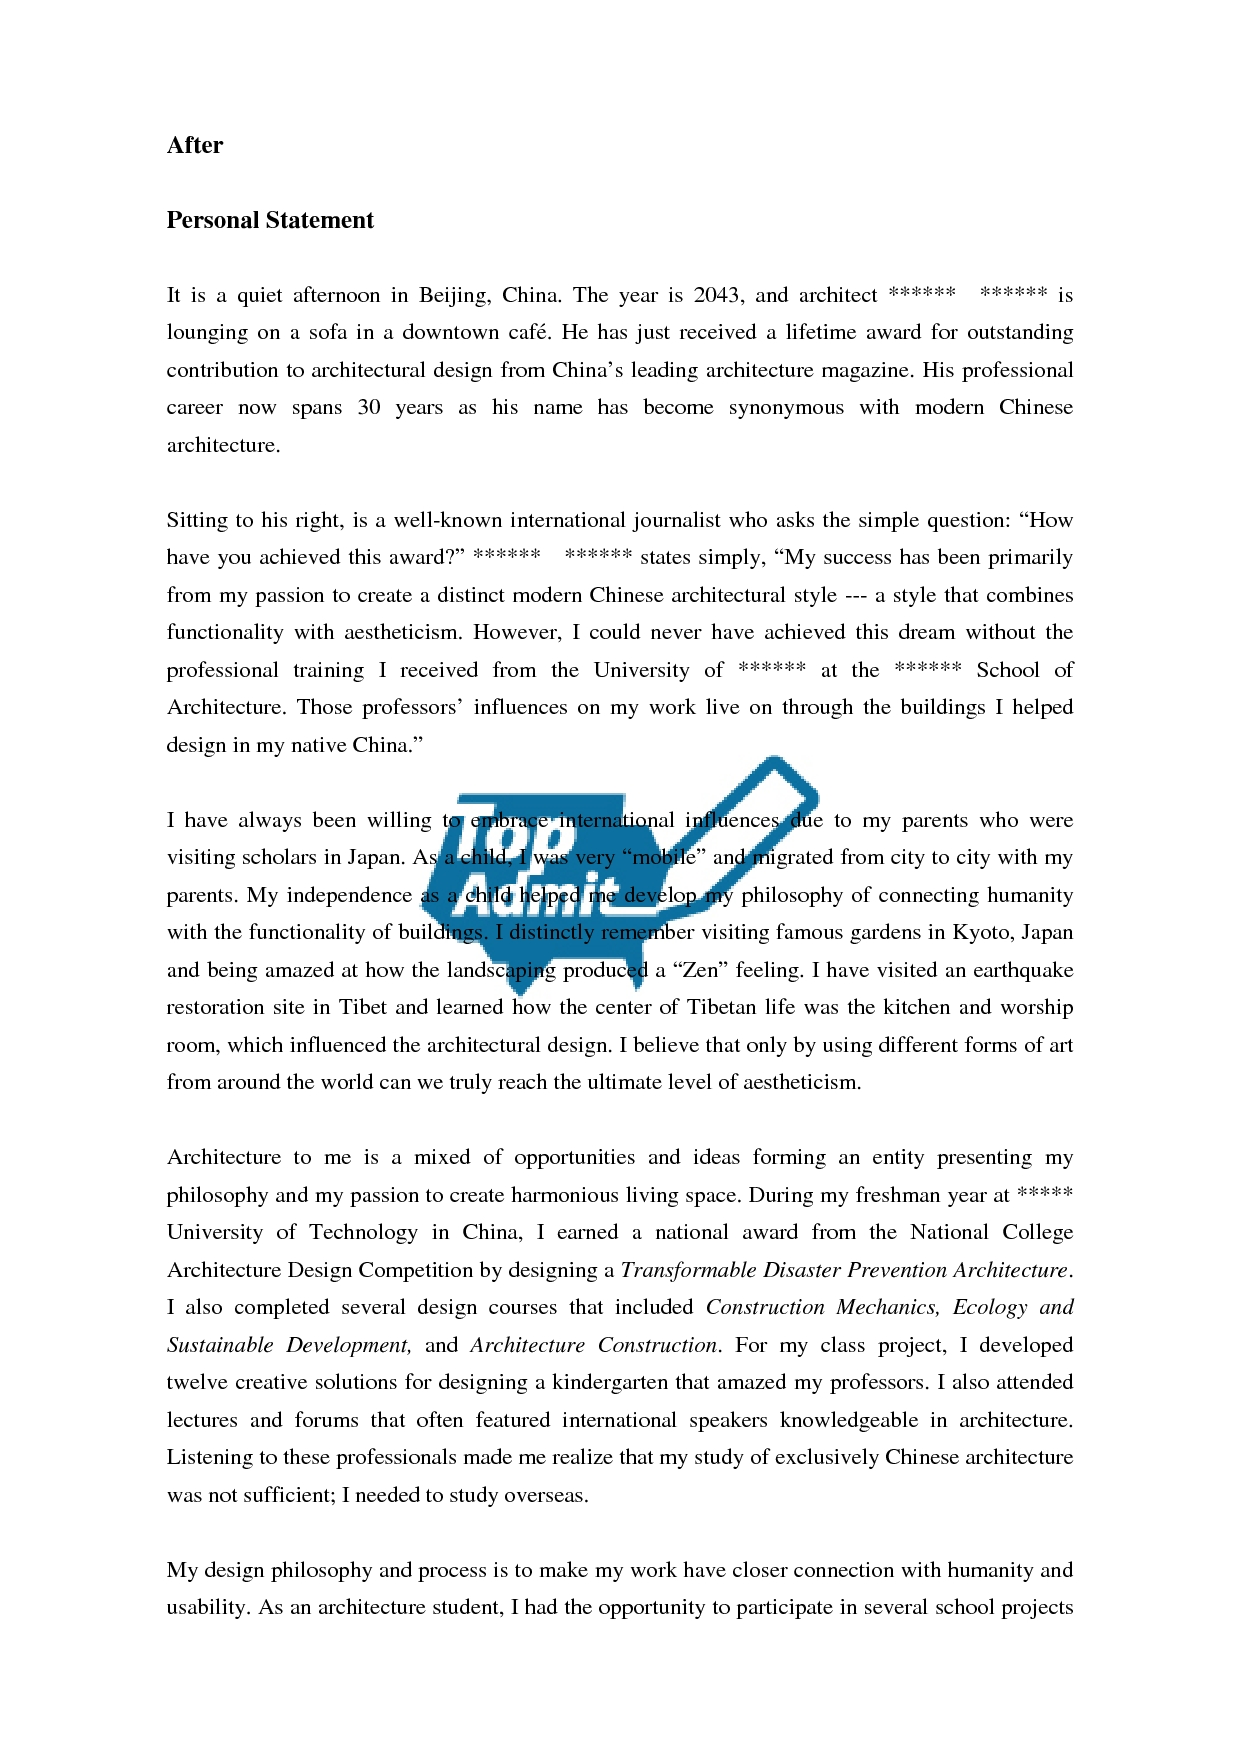 013 Essay Example Zwjgmmd Ucf Fascinating Application Admission Question Word Limit Full